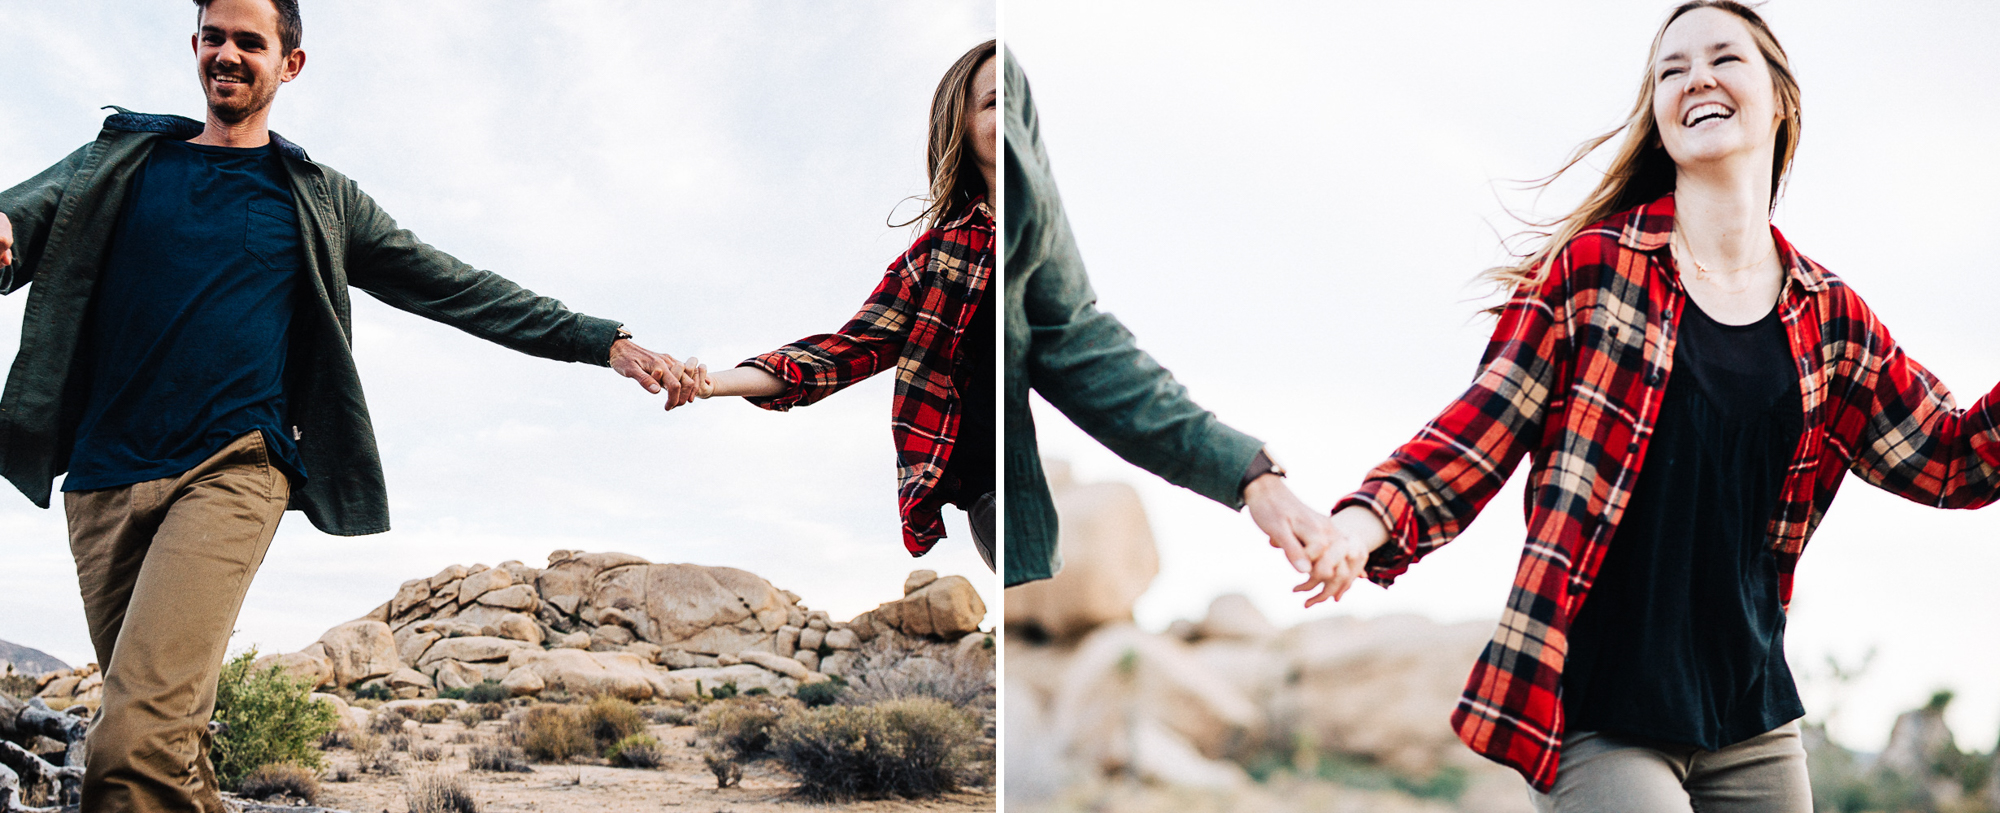 ©Isaiah & Taylor Photography - Destination Wedding Photographers - Joshua Tree, California Adventure Engagement-018.jpg